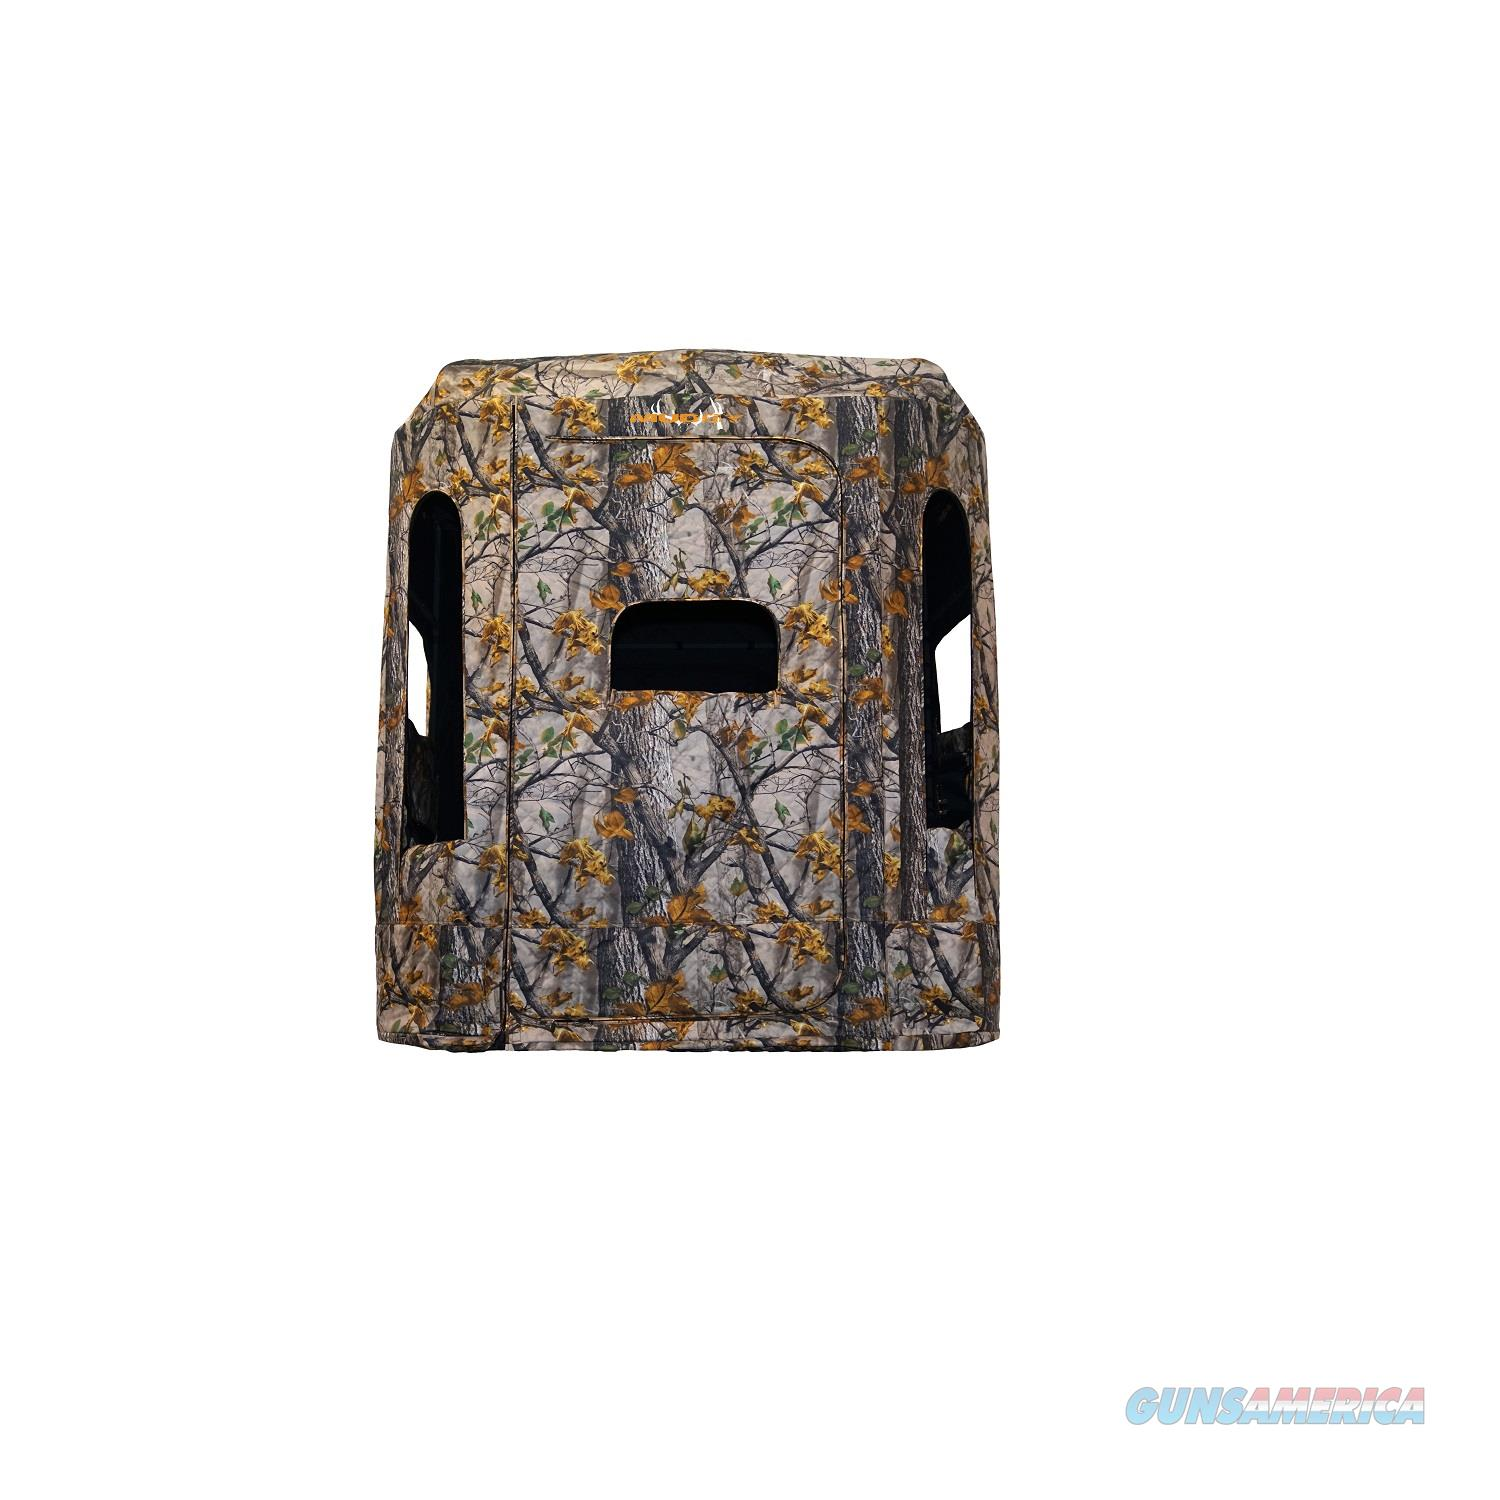 Muddy Soft-Sided 360 Blind BBB0750  Non-Guns > Hunting Clothing and Equipment > Tree Stands